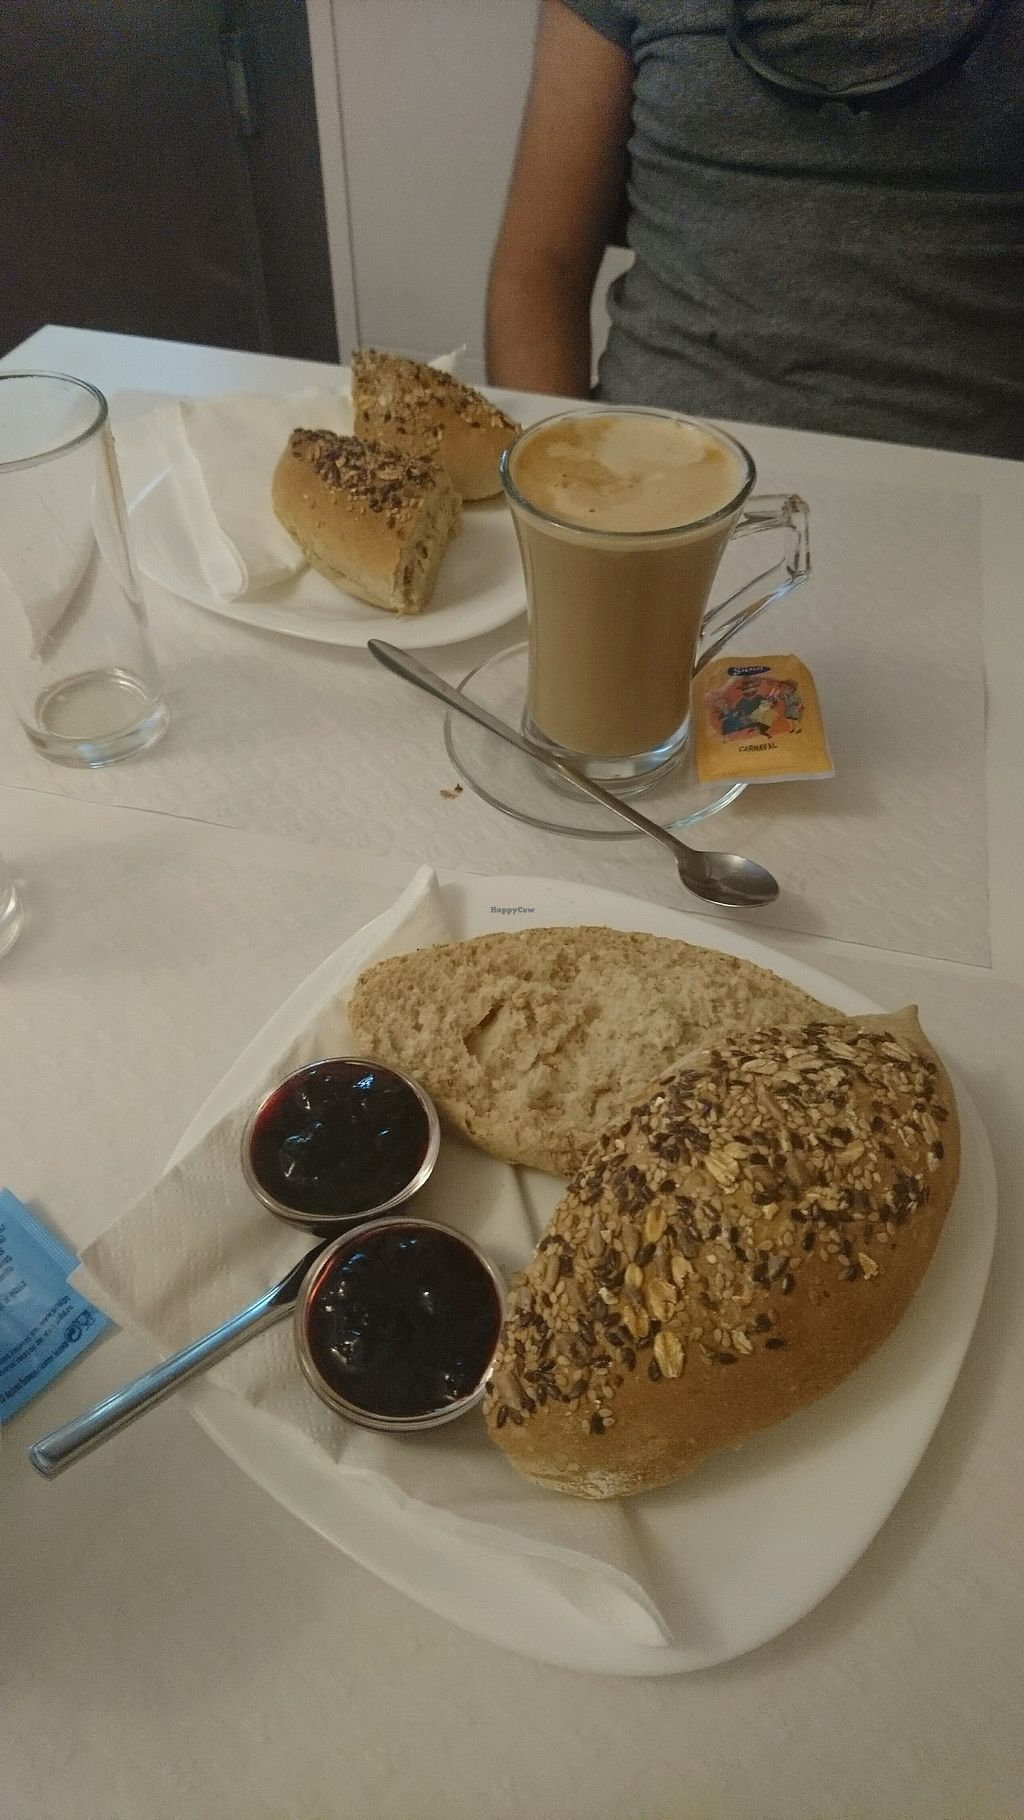 "Photo of Veganeats Caffe  by <a href=""/members/profile/TanyaClapper"">TanyaClapper</a> <br/>bread with coffe <br/> October 7, 2017  - <a href='/contact/abuse/image/74111/312610'>Report</a>"